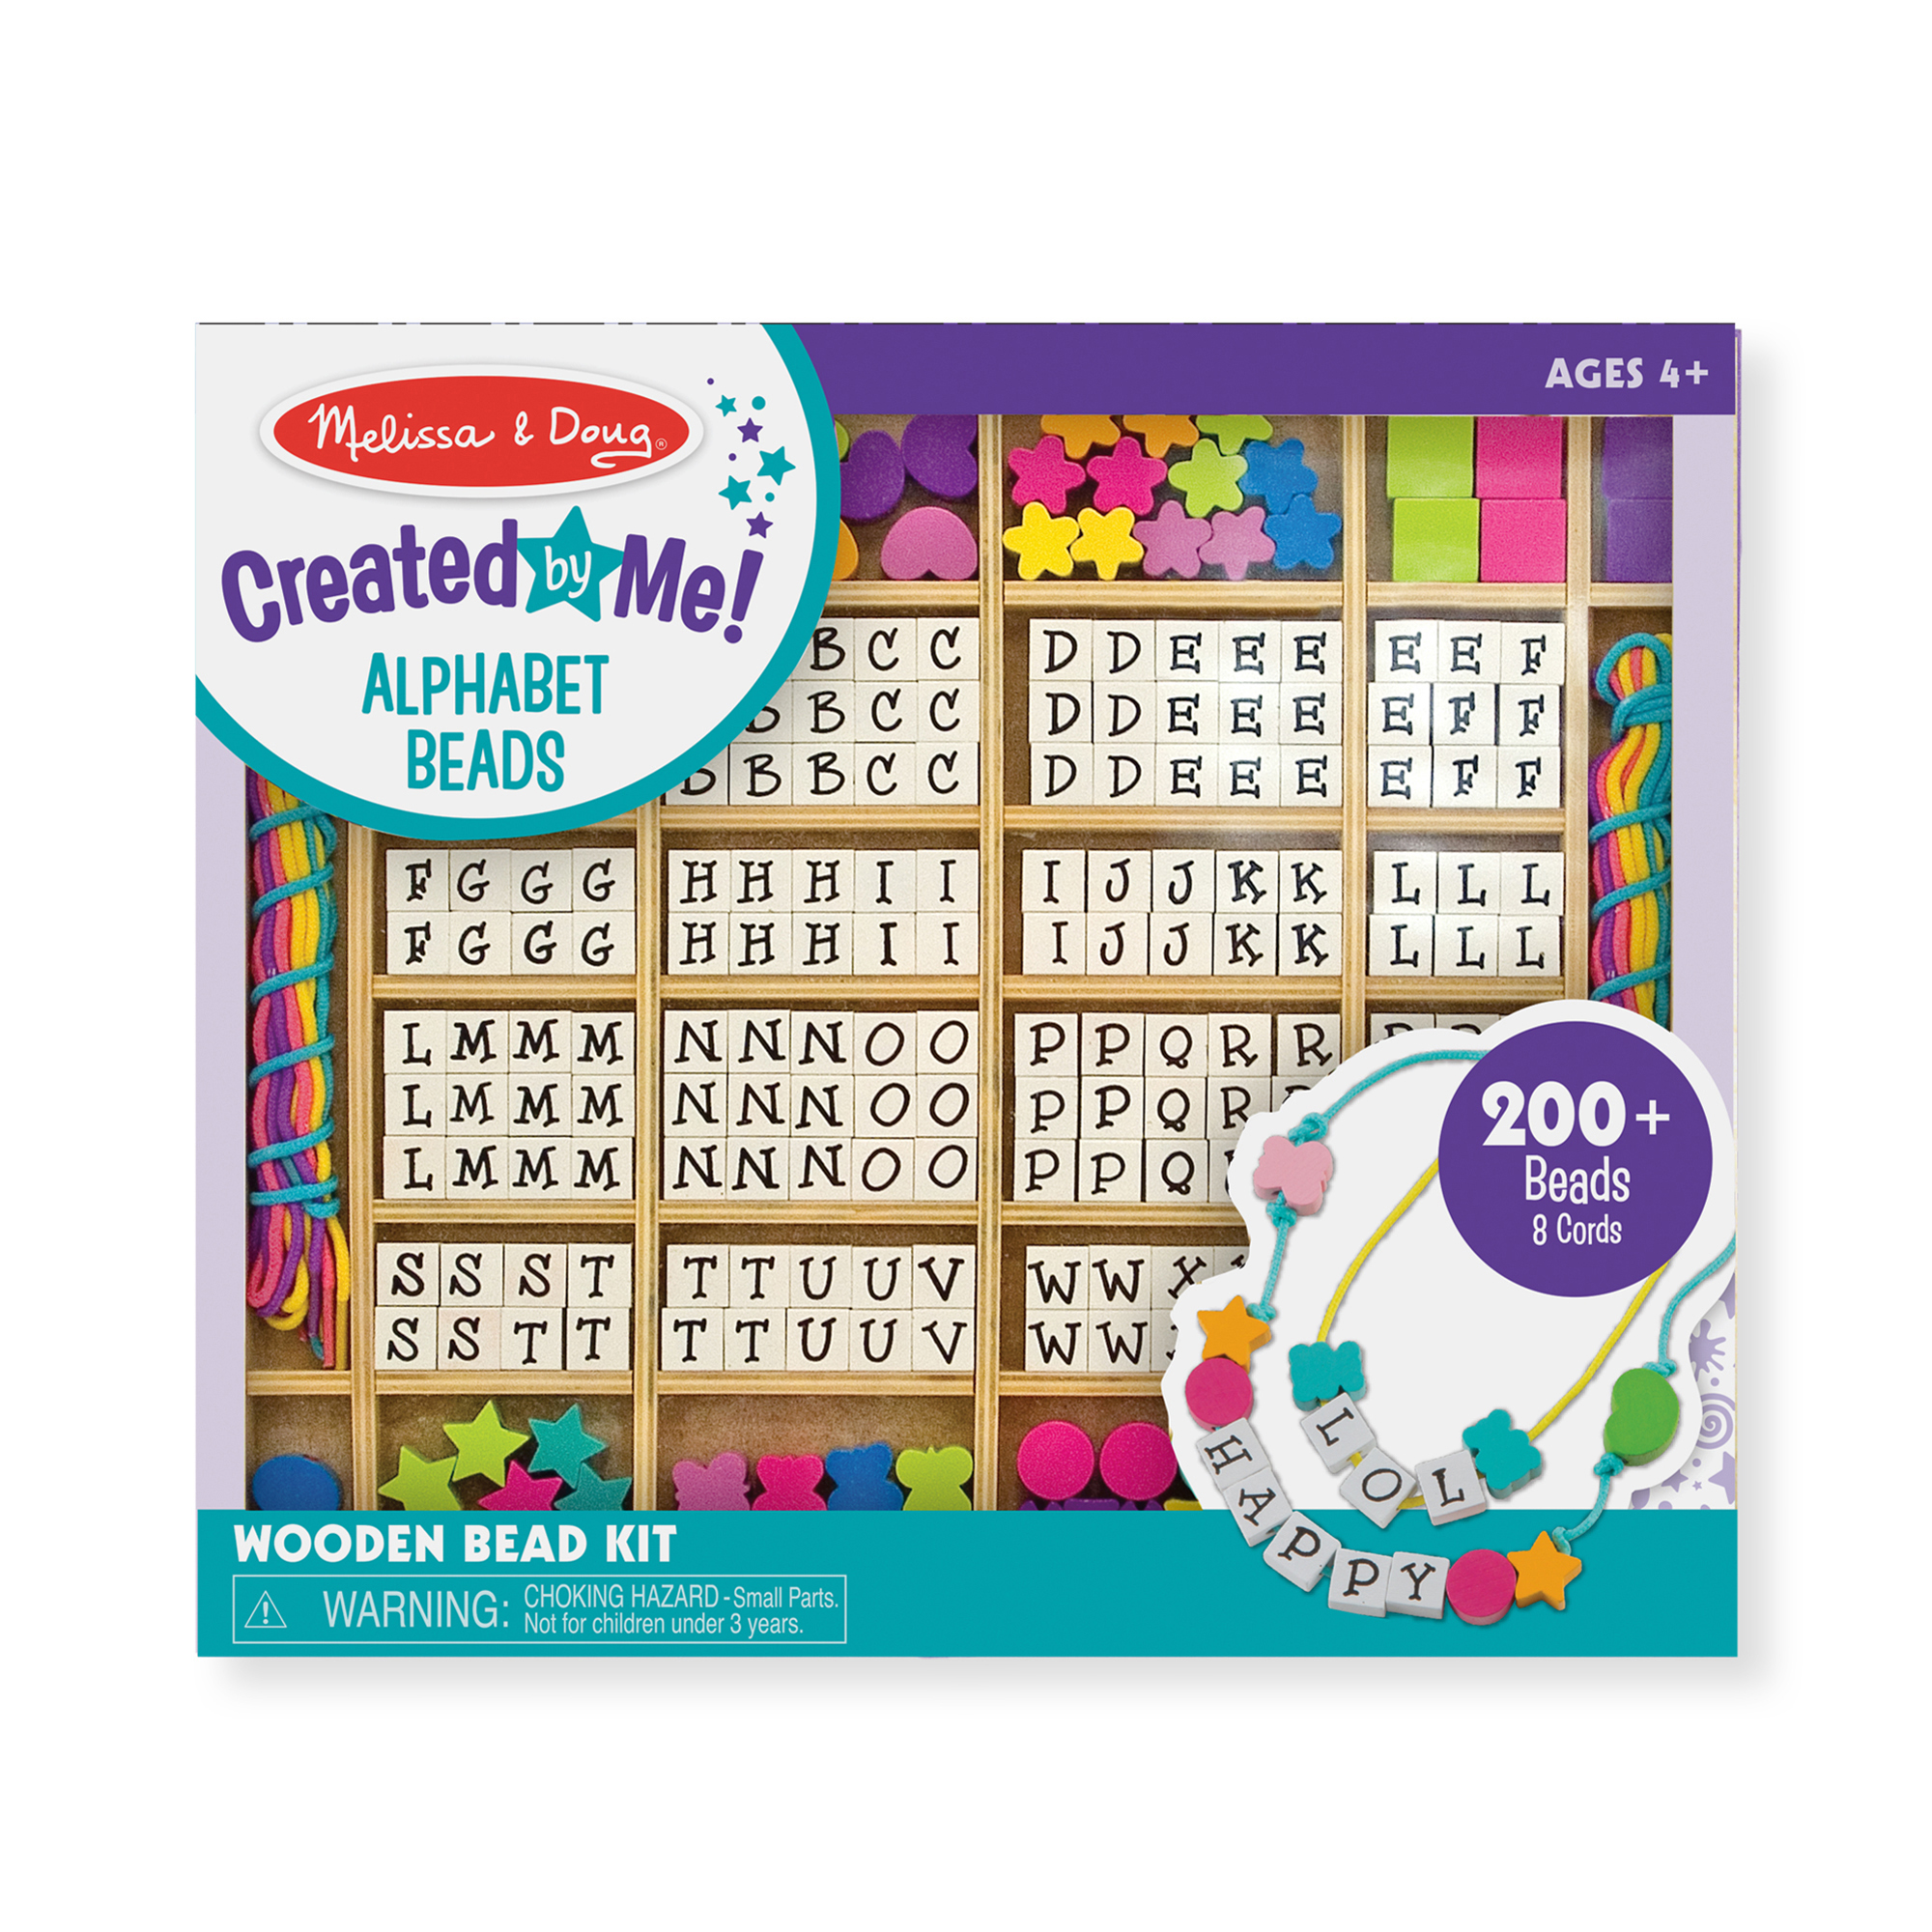 Melissa & Doug  ~ Created by Me! Alphabet Beads Wooden Bead Kit ~ 4+